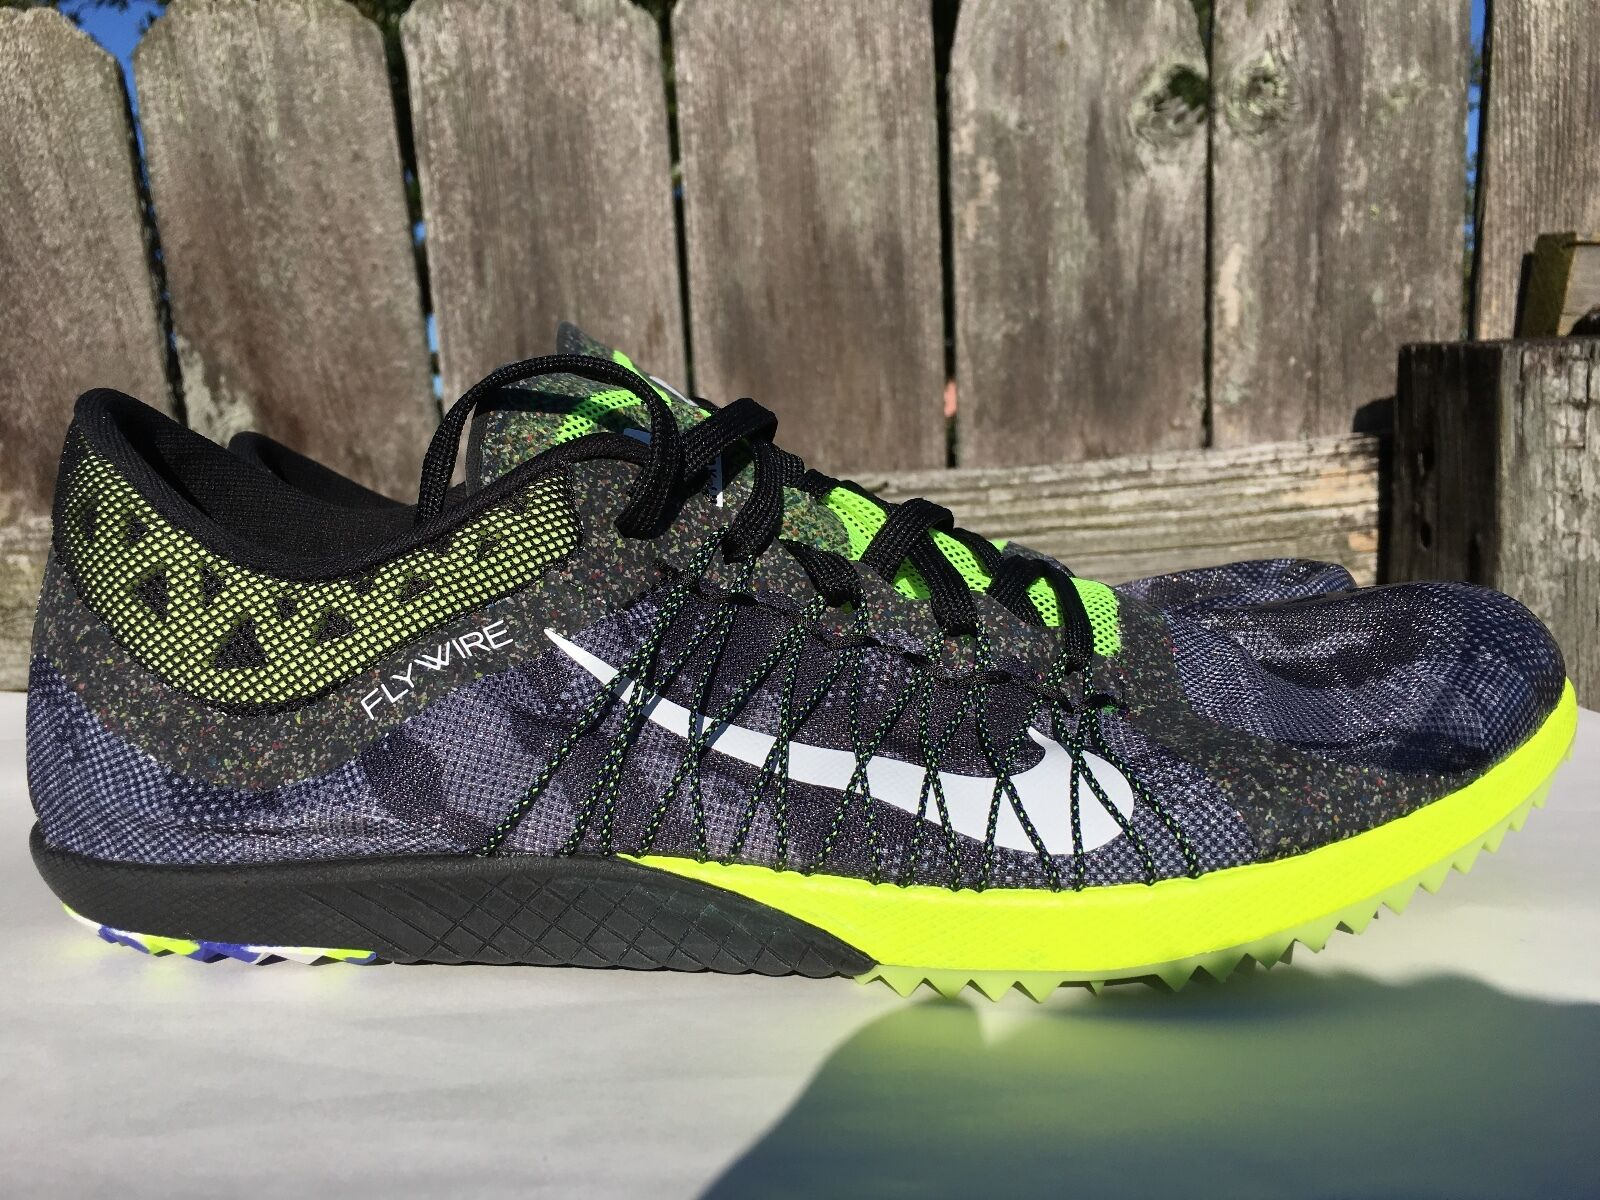 Men's Nike Victory Racing XC 3 Camo Track X Country Shoes Size 12.5 654693-017